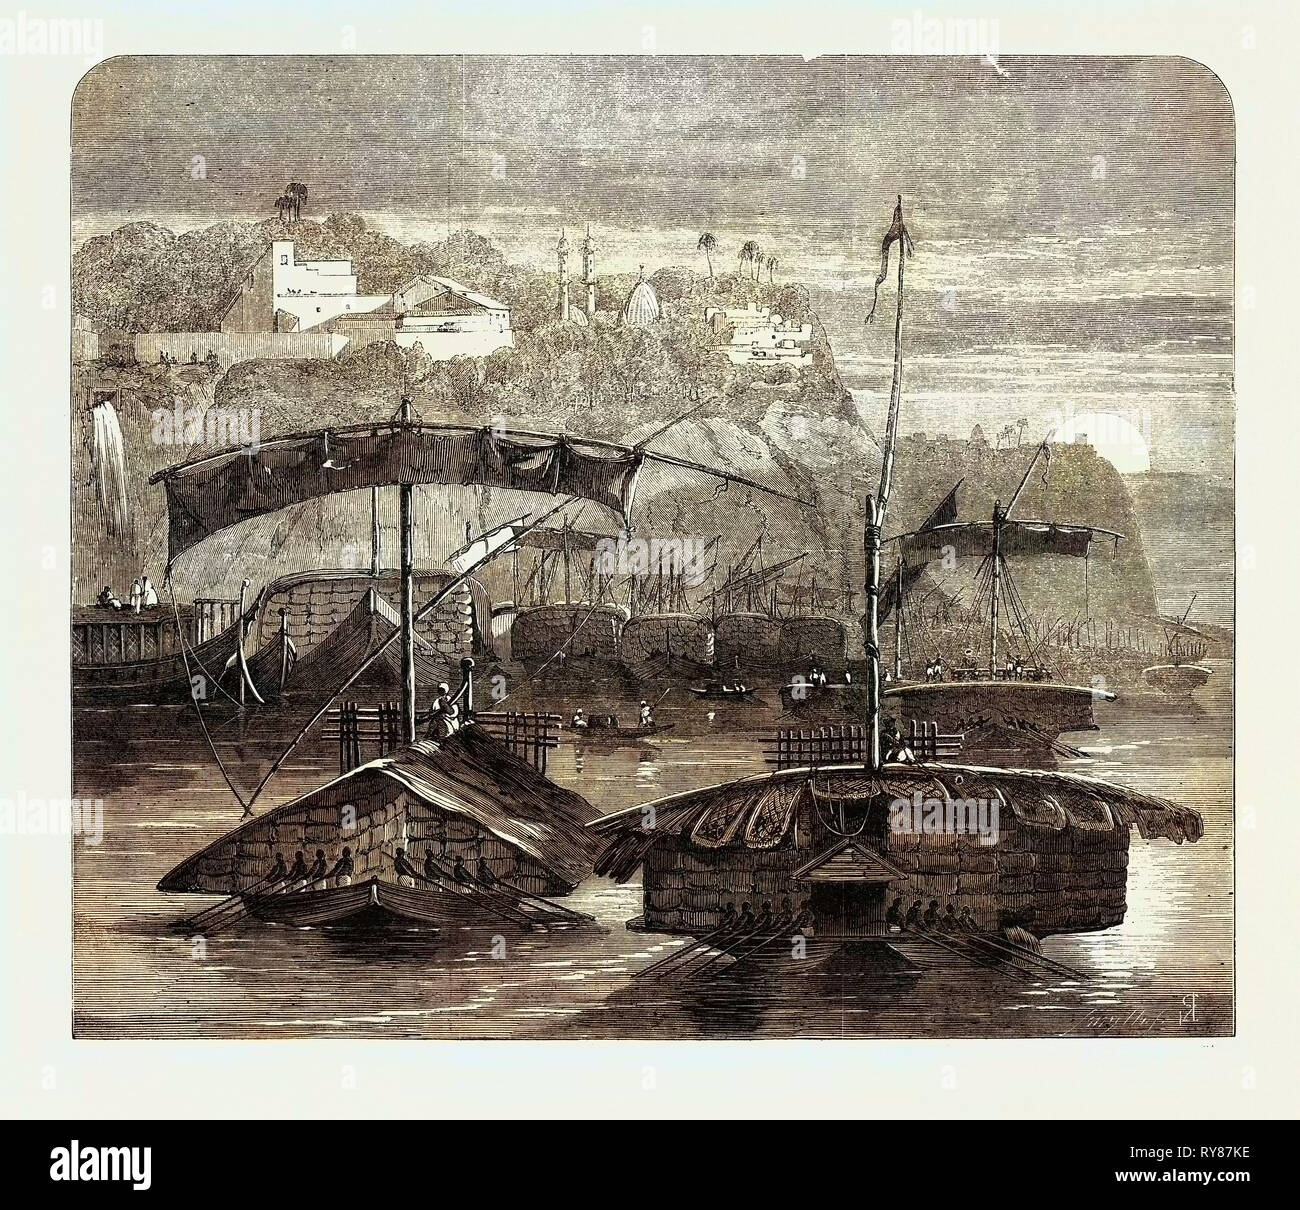 Cotton from India: A Cotton Fleet Descending the Ganges Casting Off from Mirzapore Early in the Morning 1862 Stock Photo